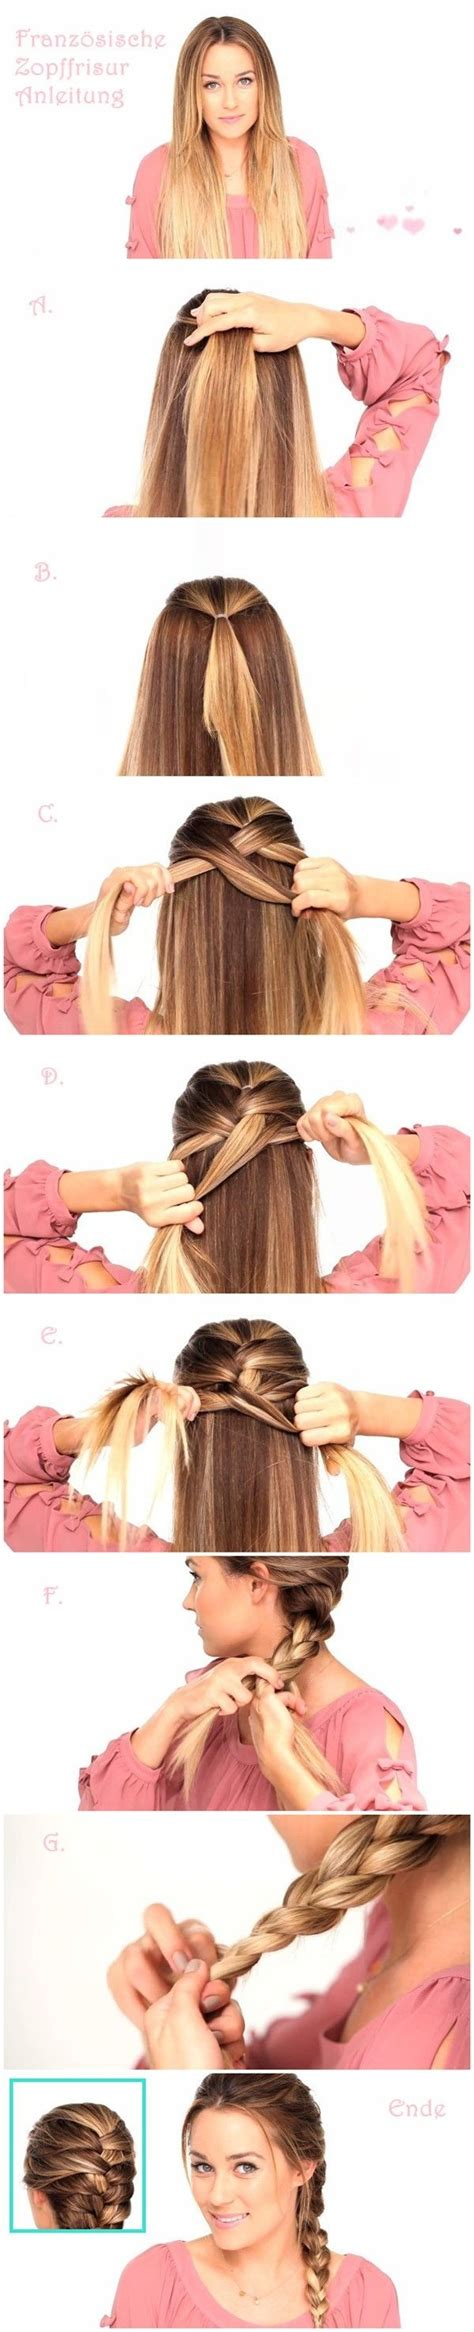 easy hairstyles for long straight hair step by step 10 french braids hairstyles tutorials everyday hair